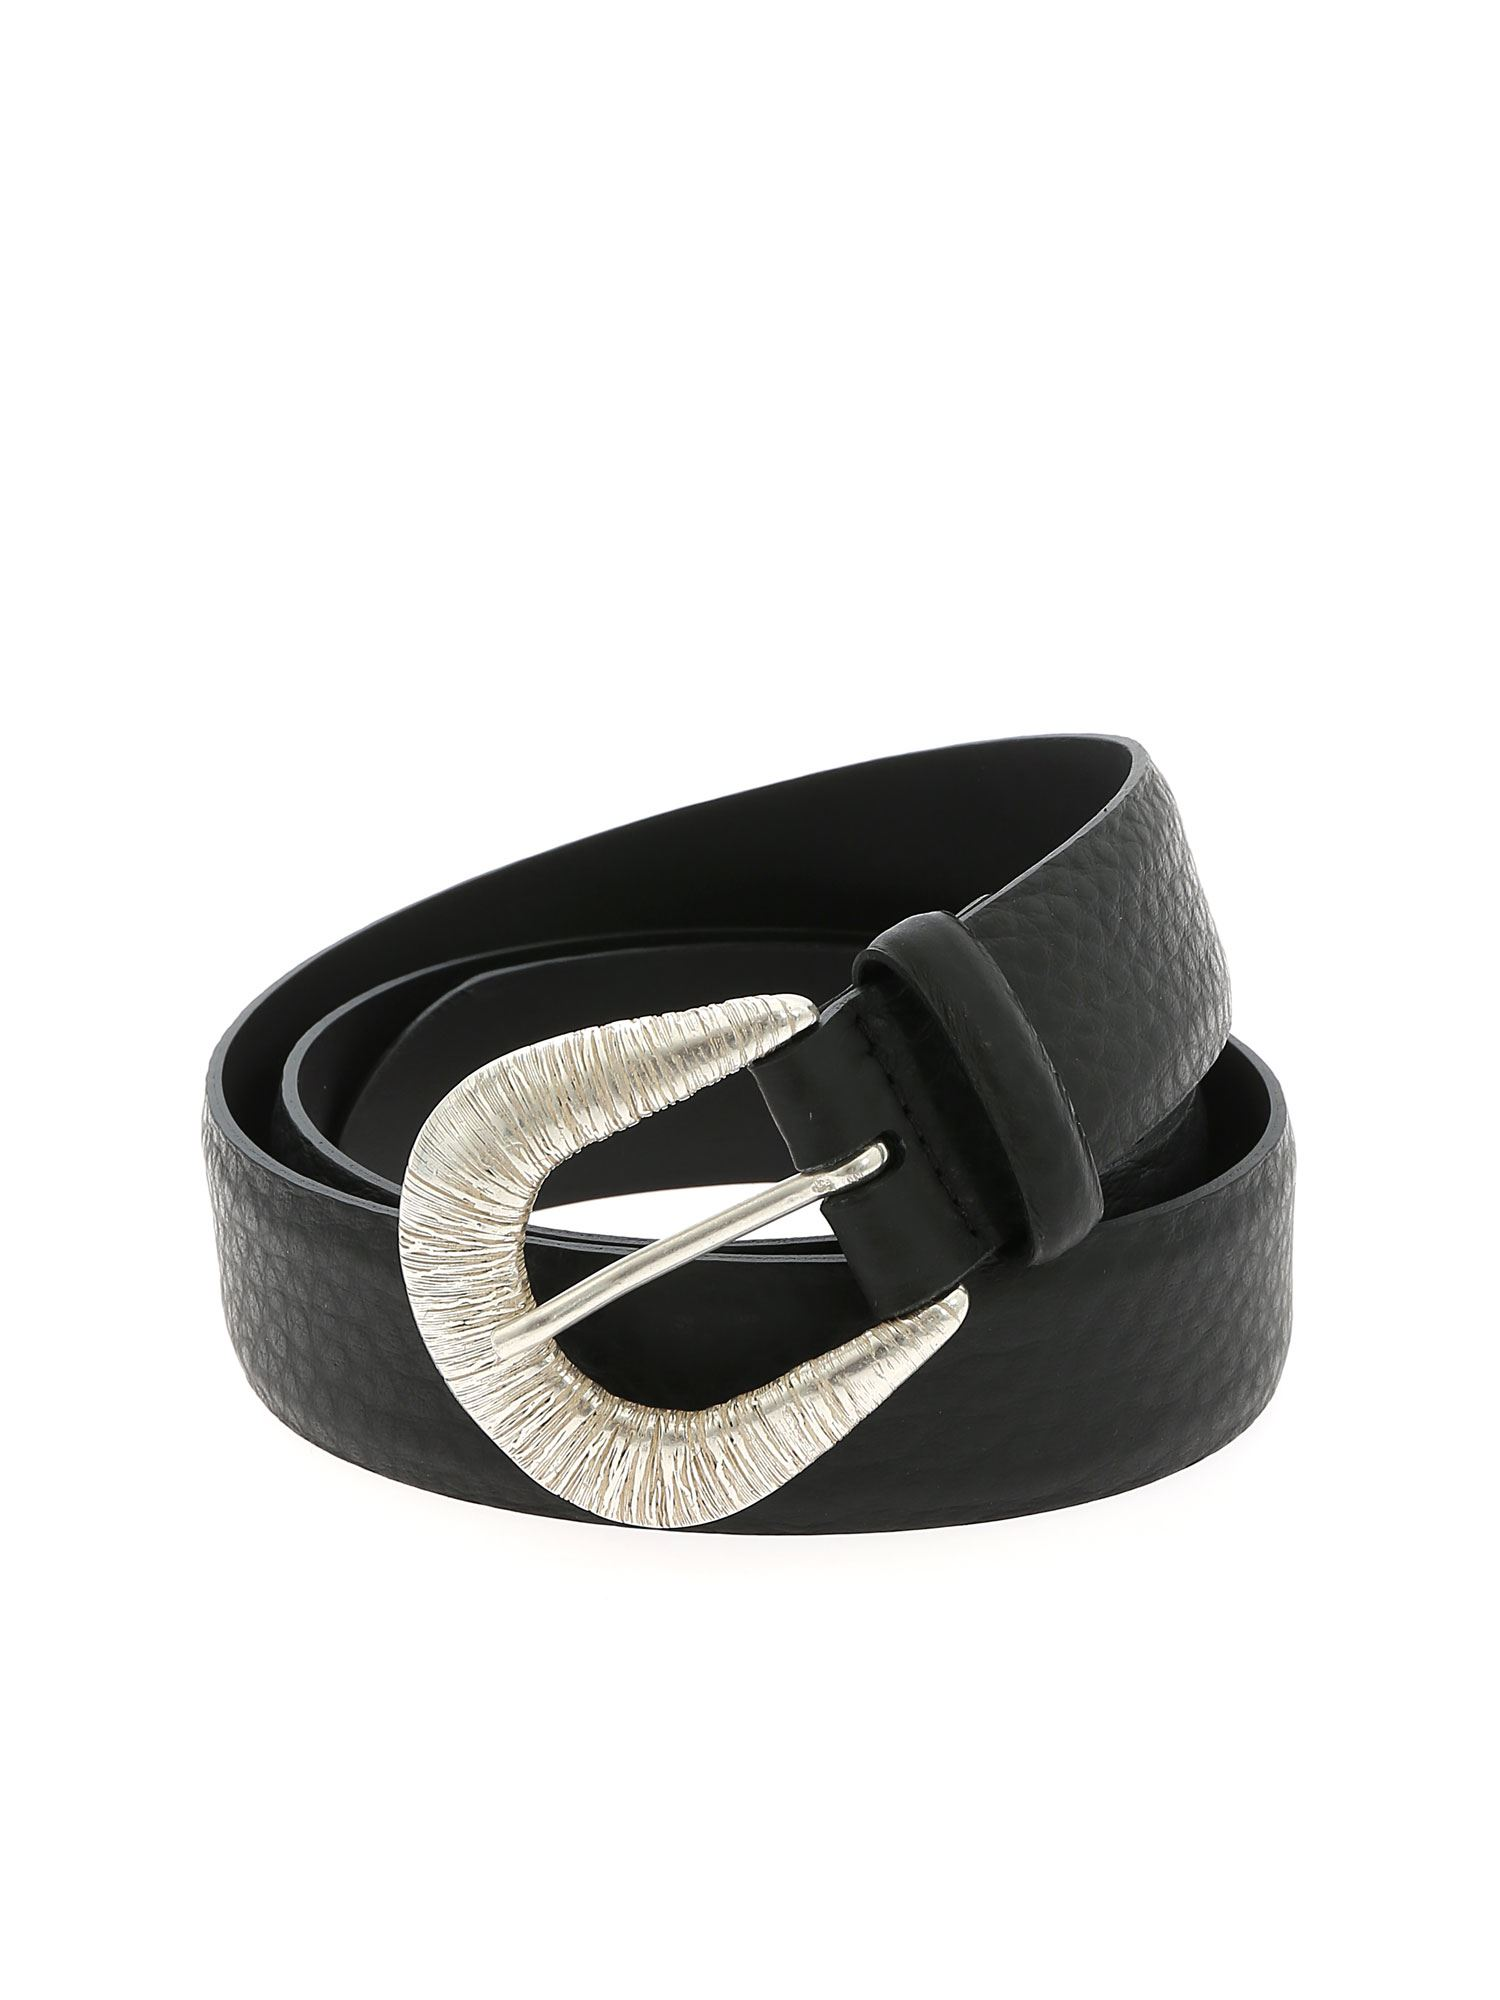 Orciani SOFT BELT IN BLACK WITH STRIPED EFFECT BUCKLE